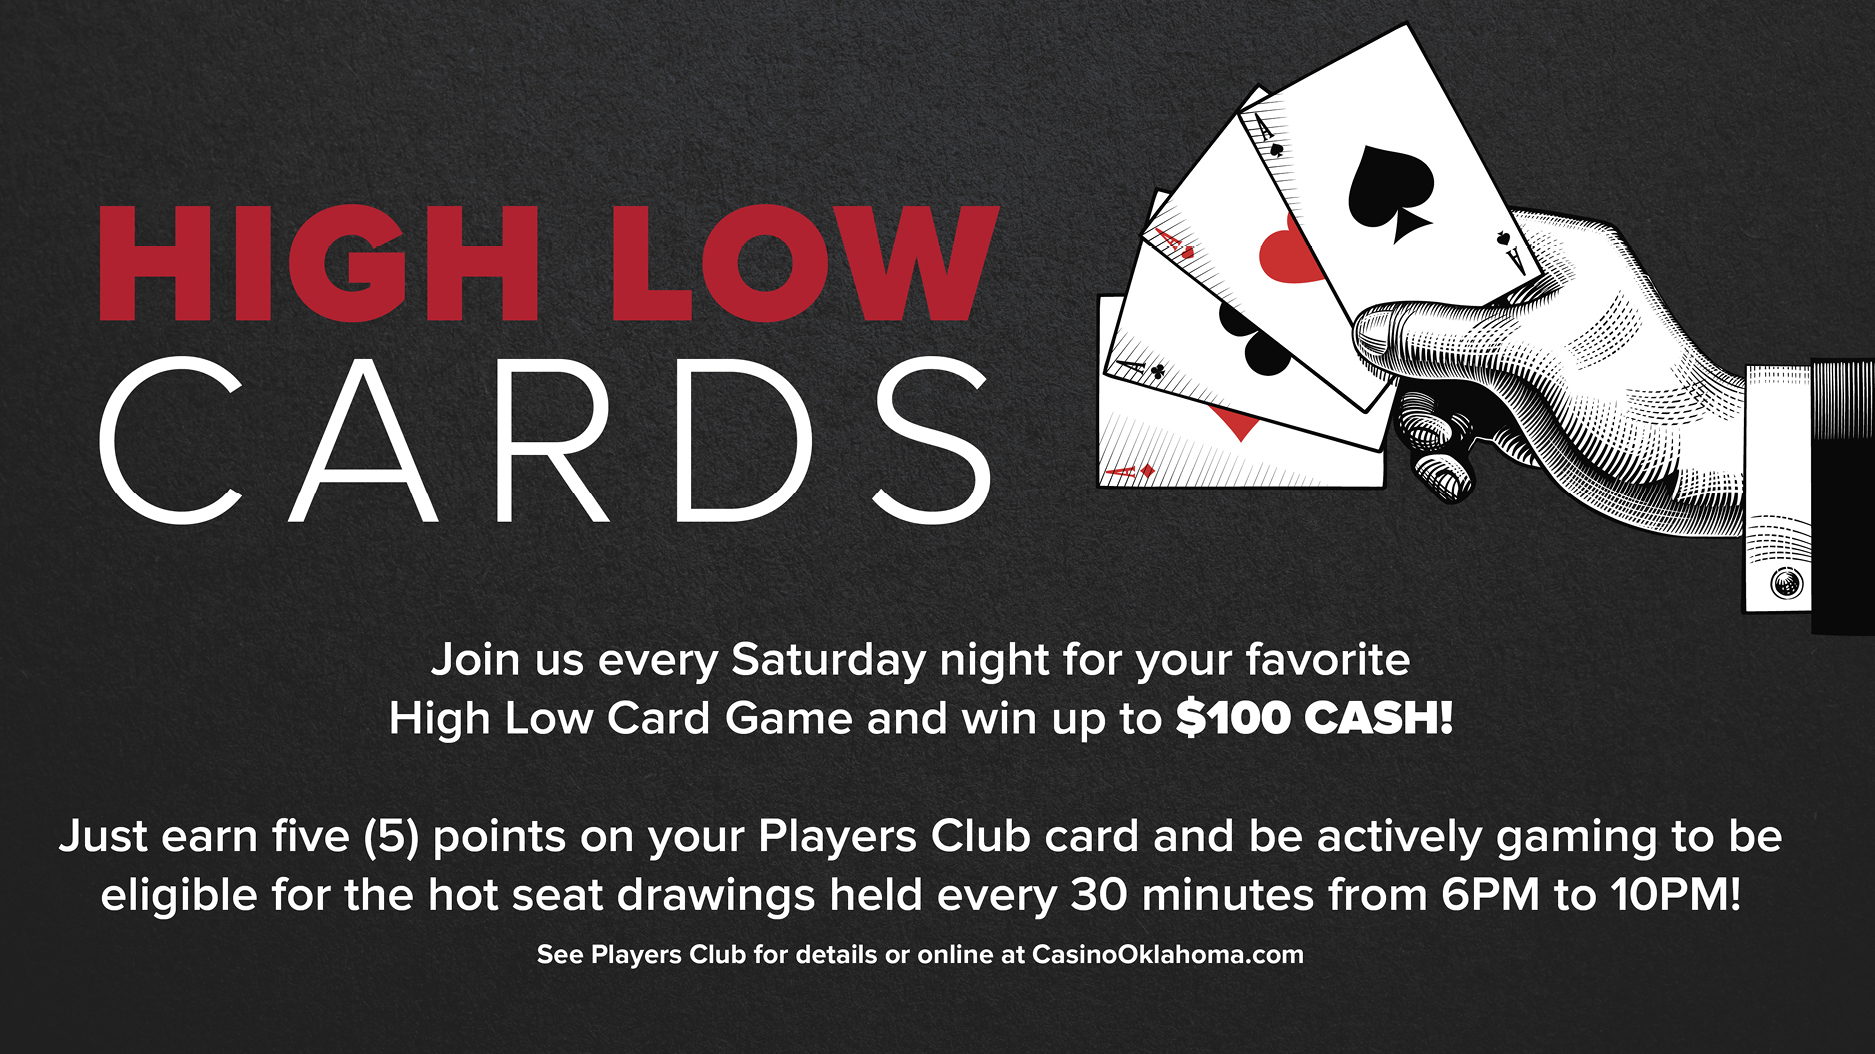 High Low Cards